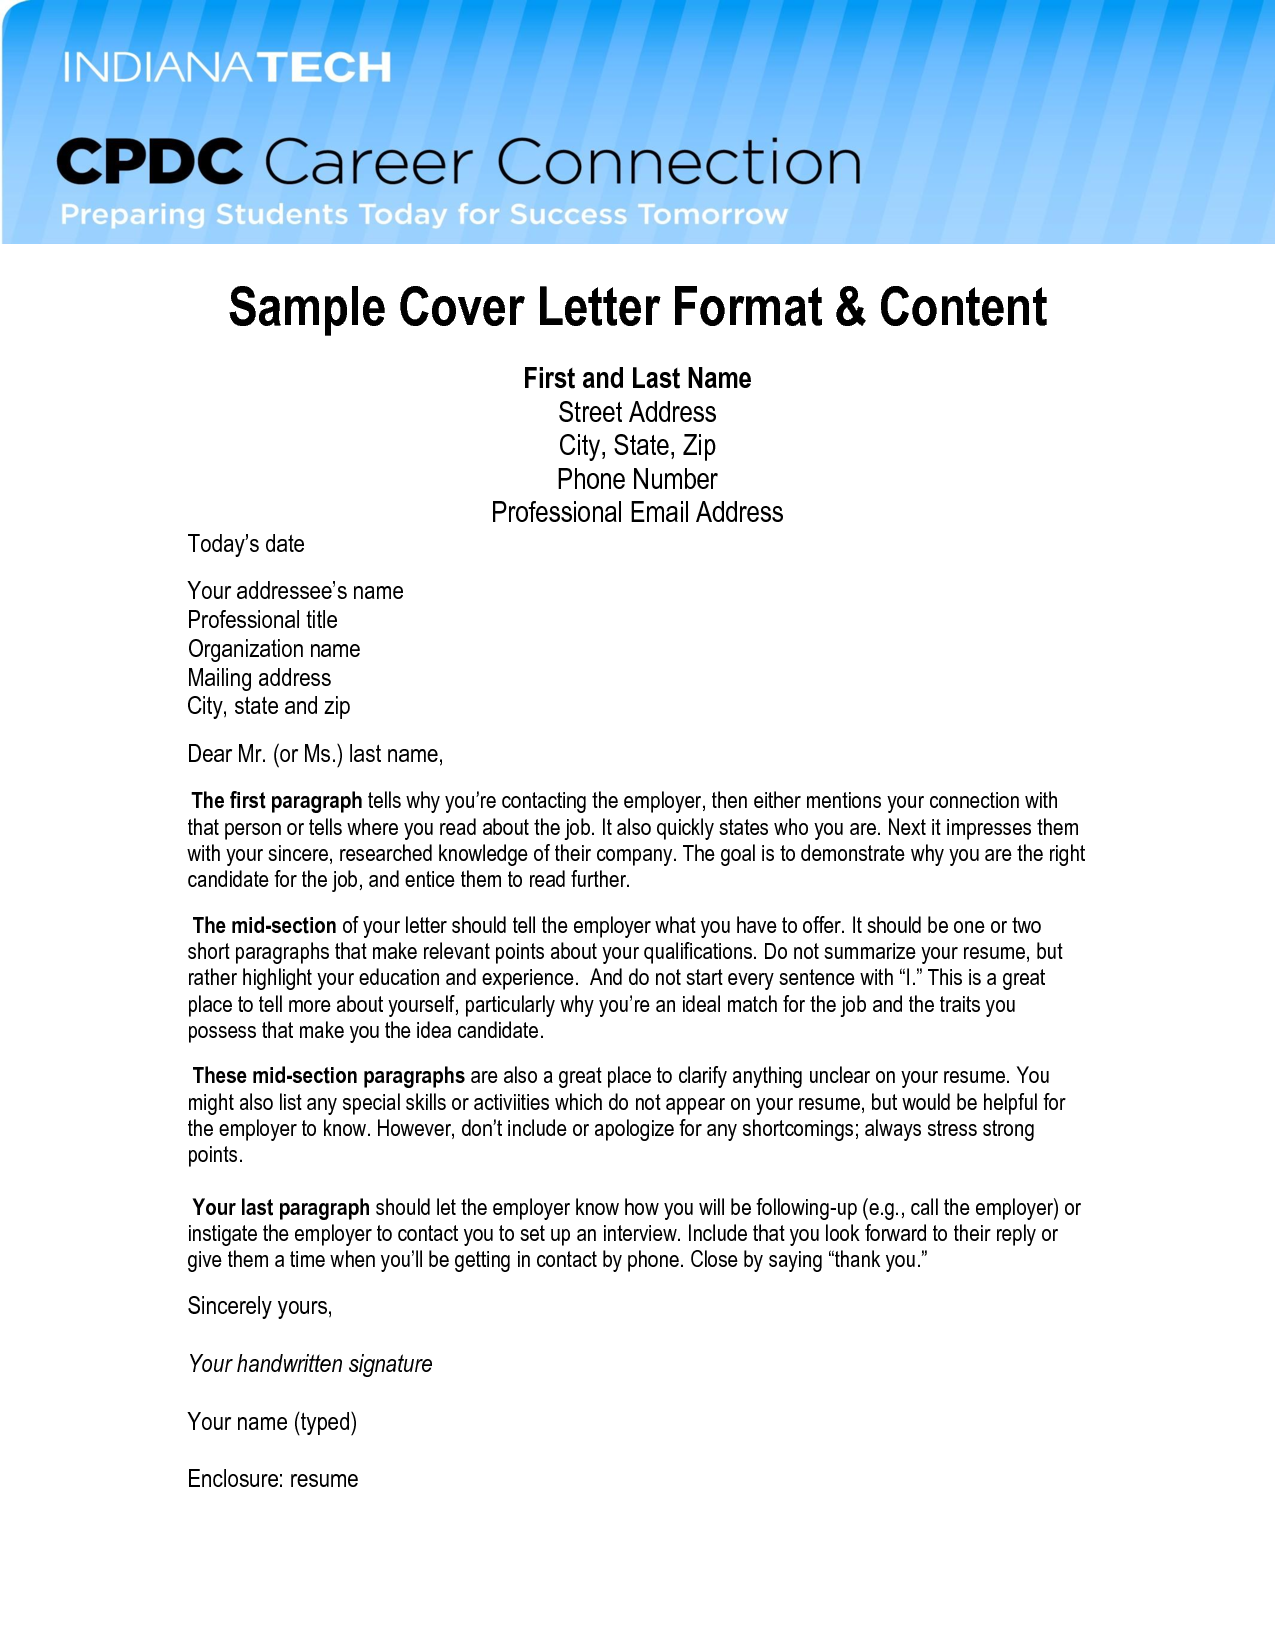 Email cover letter format campaign very interested the top with email cover letter format campaign very interested the top with formal business exampleofessional address spiritdancerdesigns Gallery